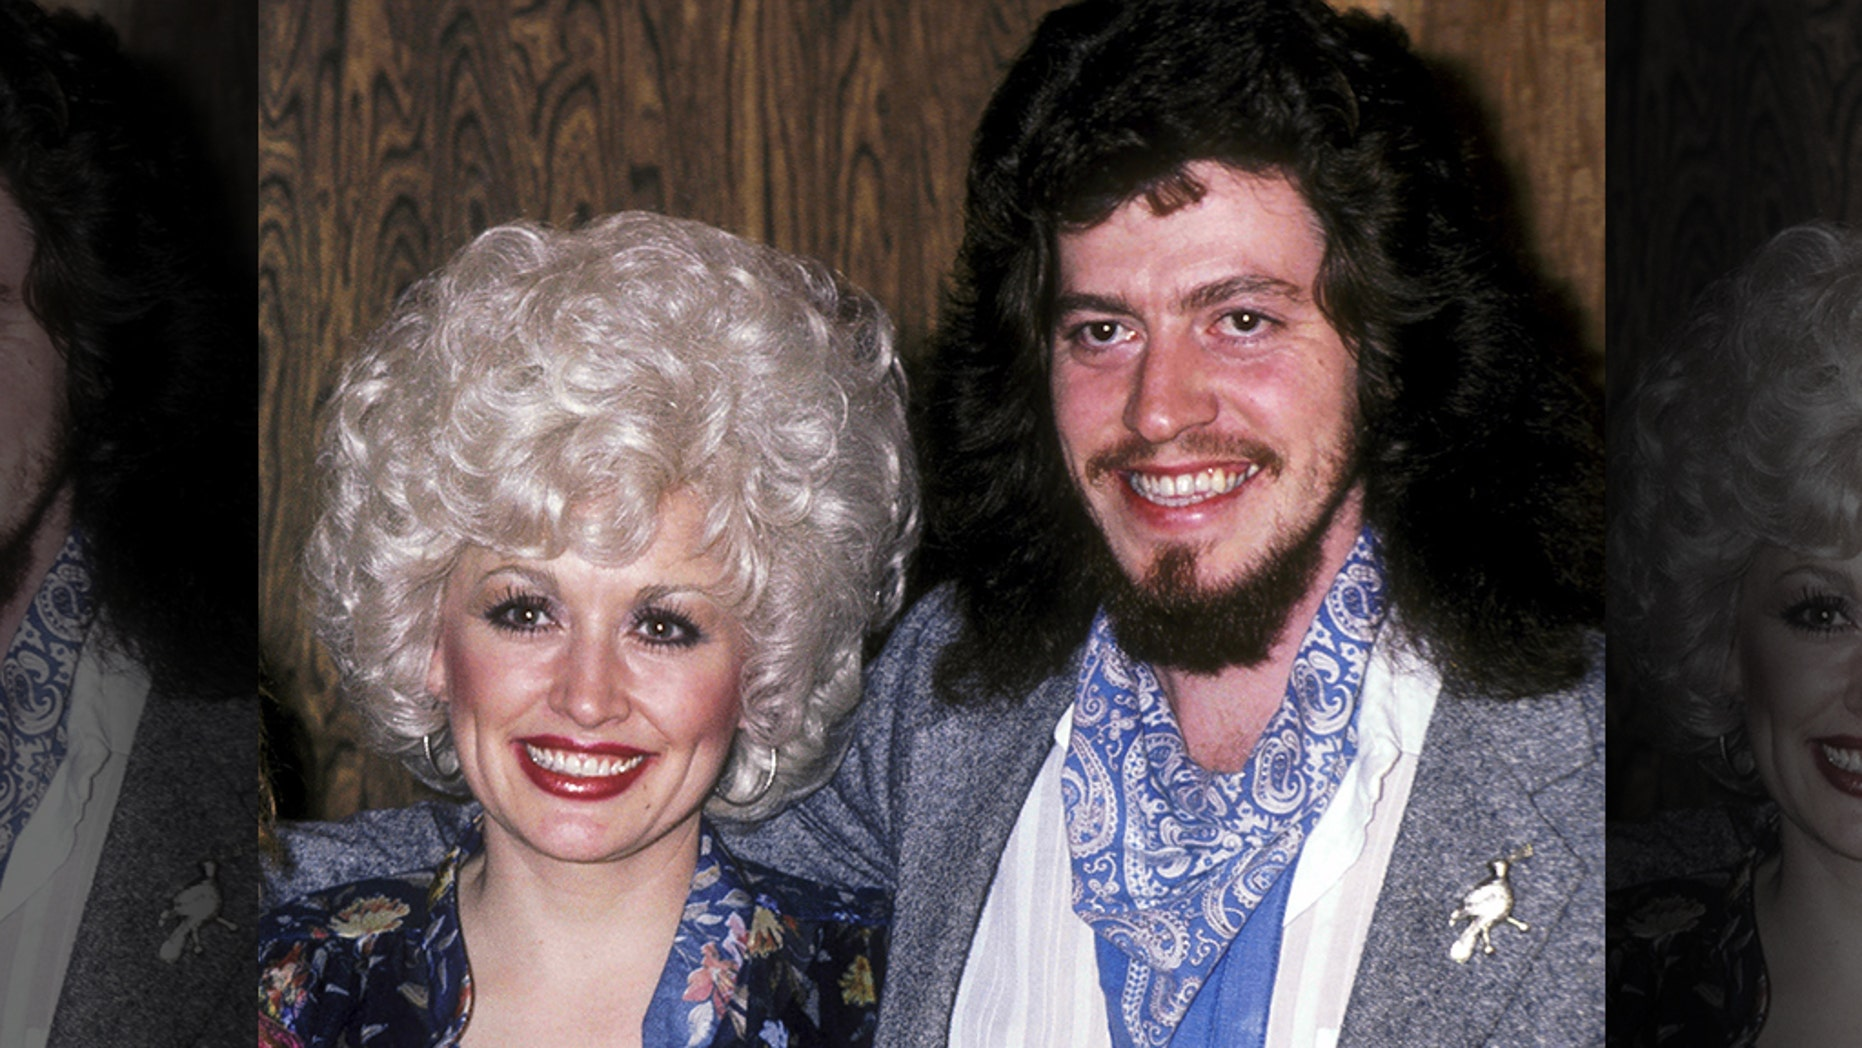 Dolly Parton and Floyd Parton are pictured here on January 15, 1981. Floyd died on Thursday at the age of 61.